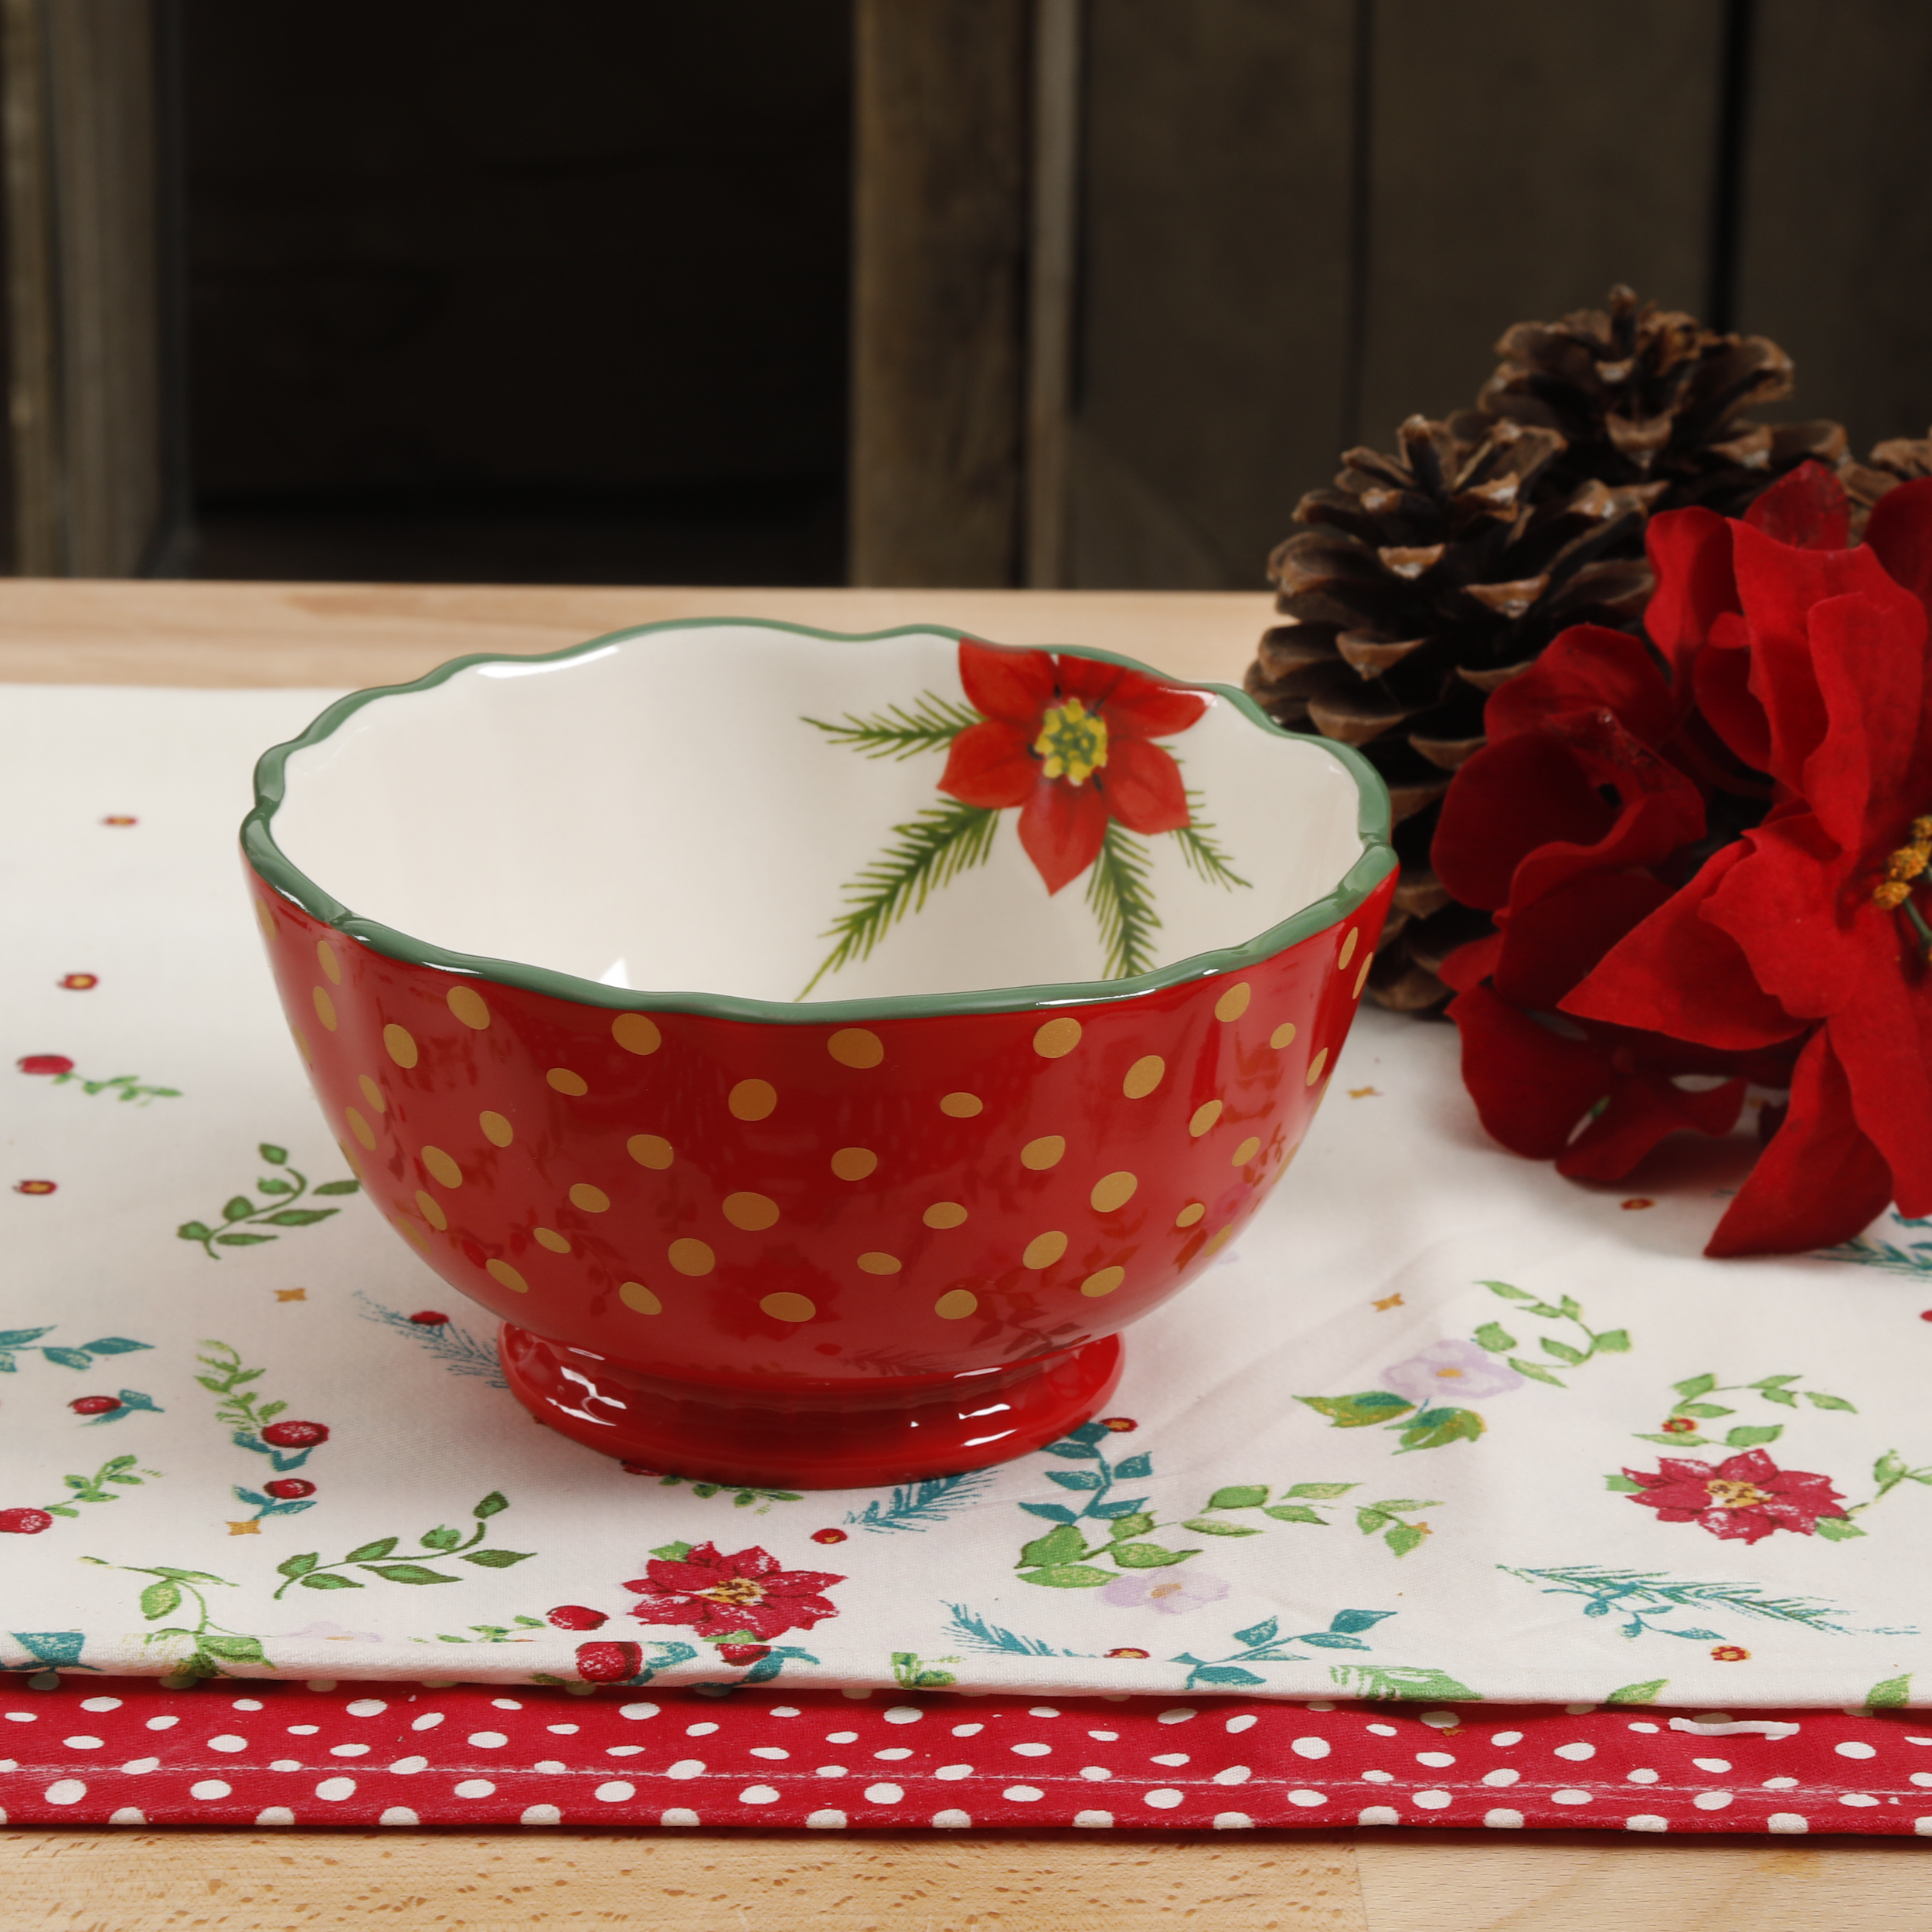 The Pioneer Woman Garland 6.25-Inch Bowl